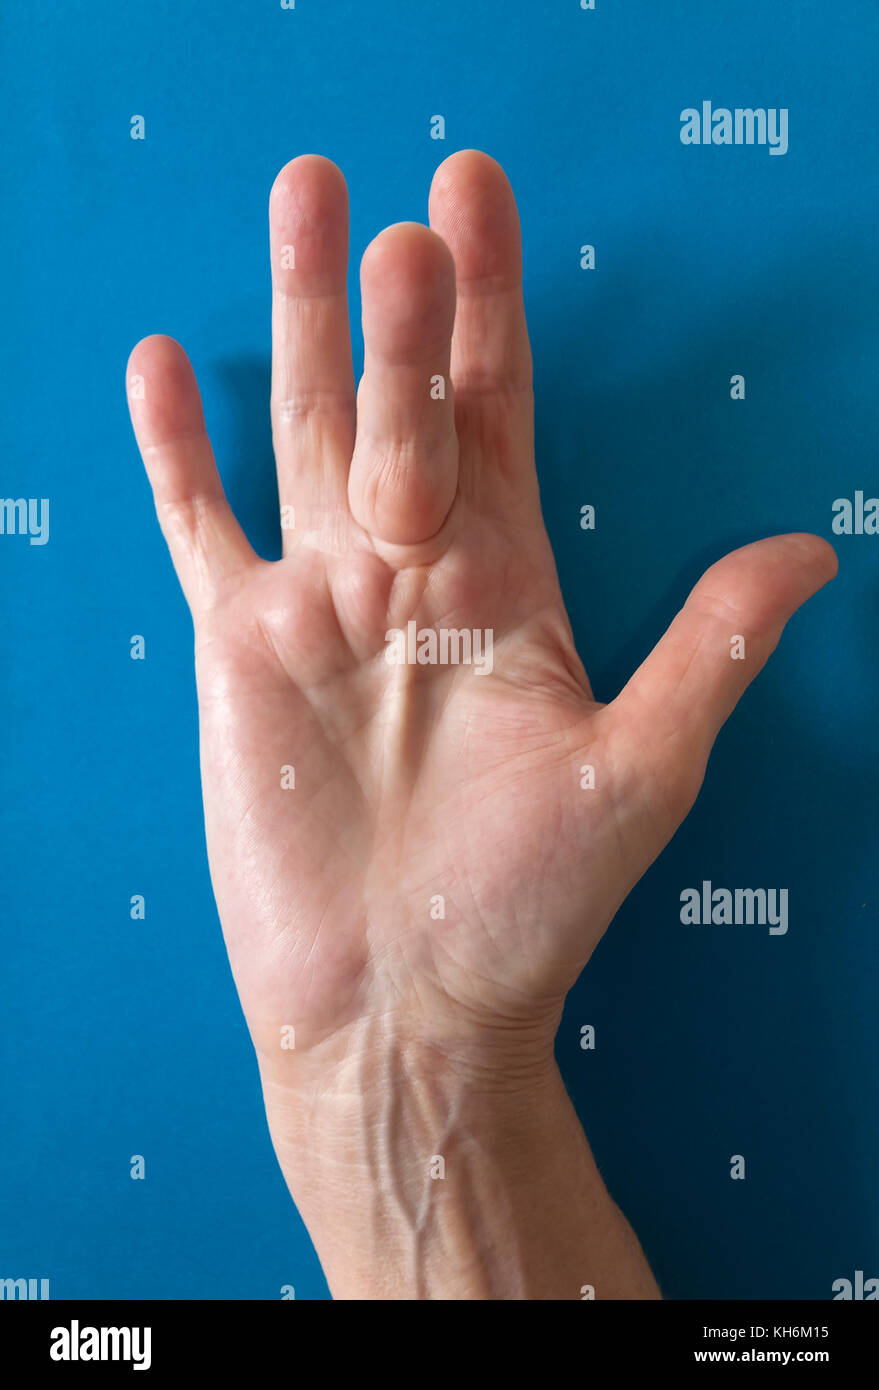 Fingers Bent Stock Photos & Fingers Bent Stock Images - Alamy